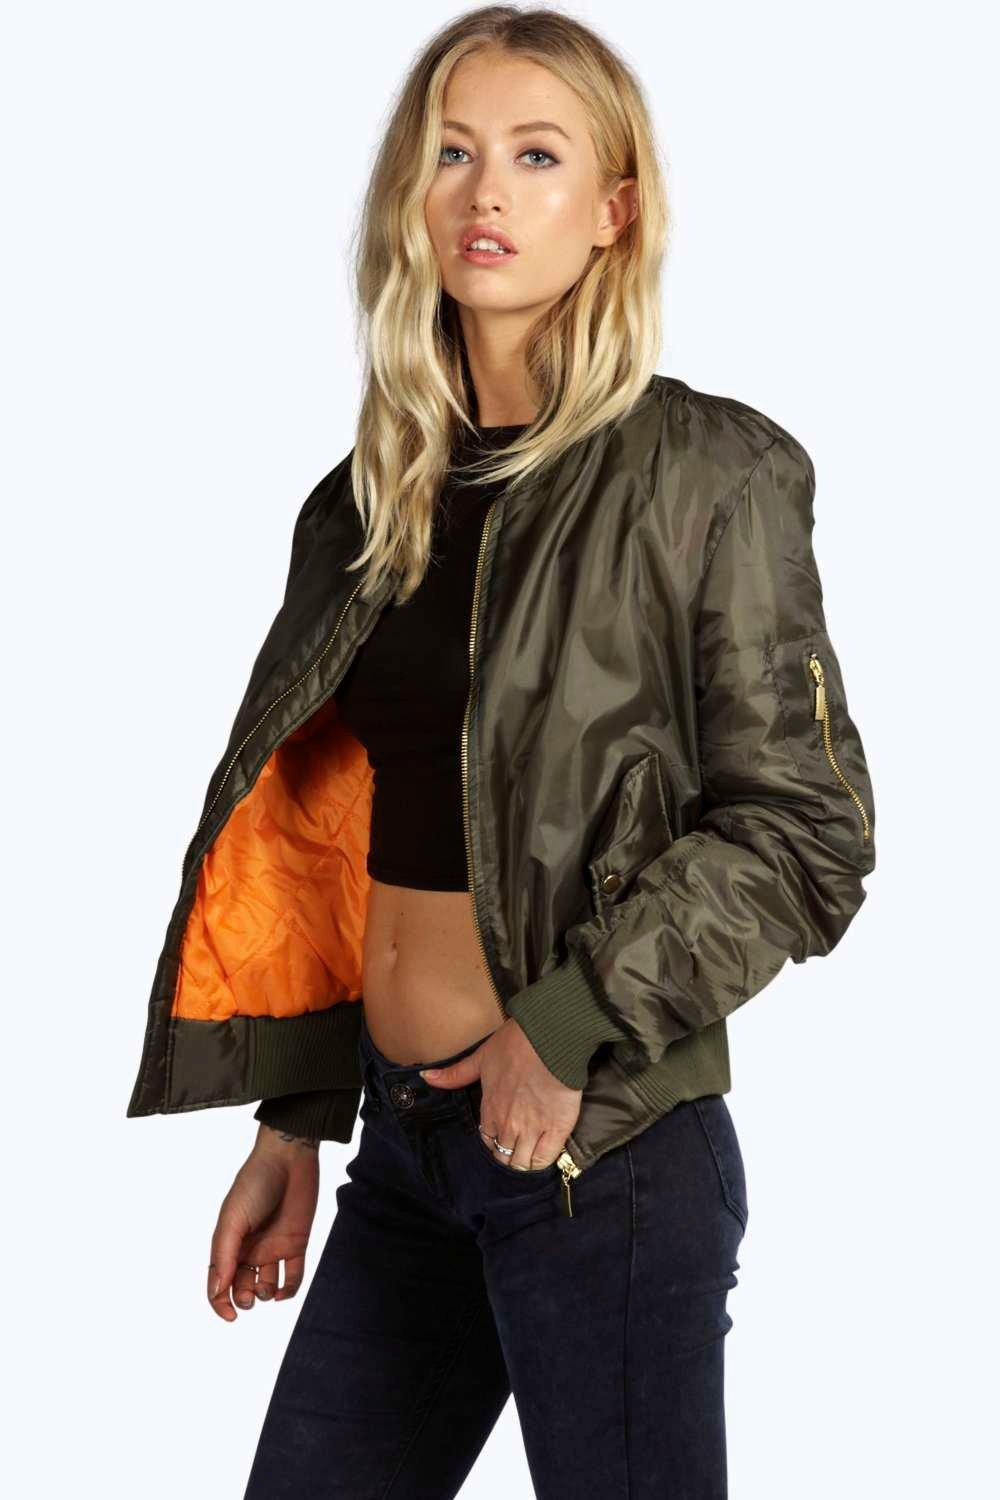 Women's love for the bomber jackets